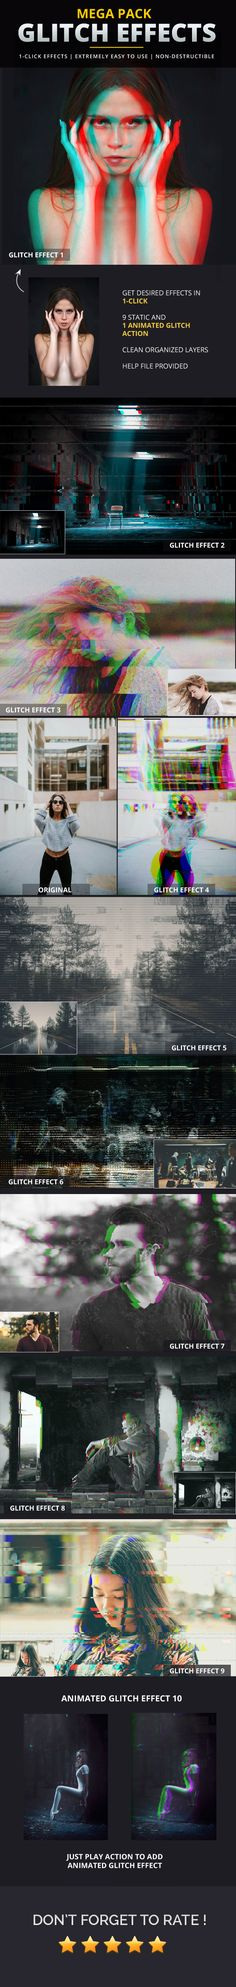 Glitch Effects Mega Pack